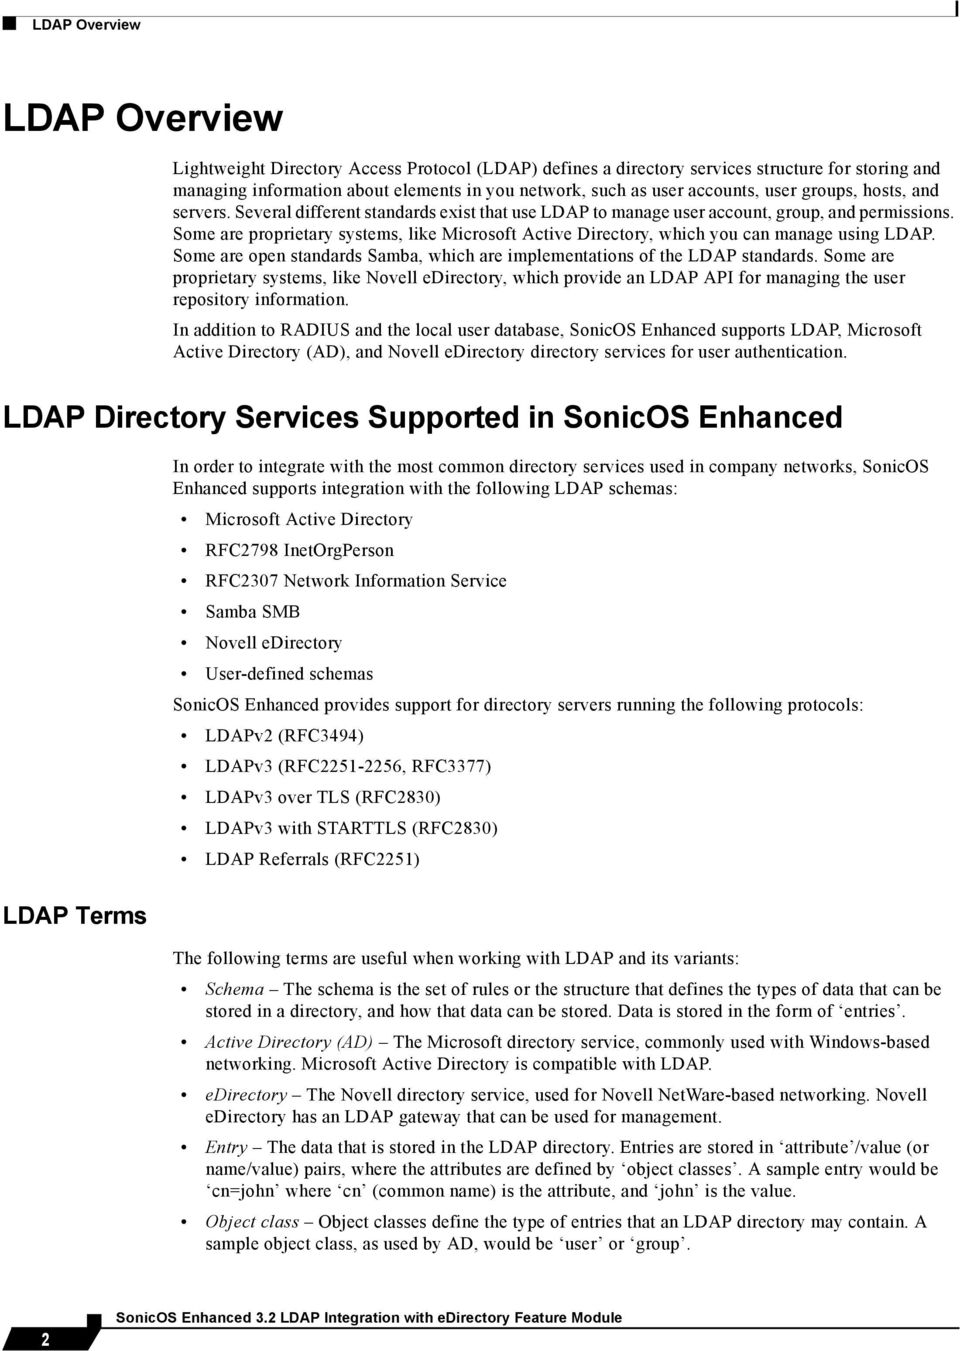 Some are proprietary systems, like Microsoft Active Directory, which you can manage using LDAP. Some are open standards Samba, which are implementations of the LDAP standards.